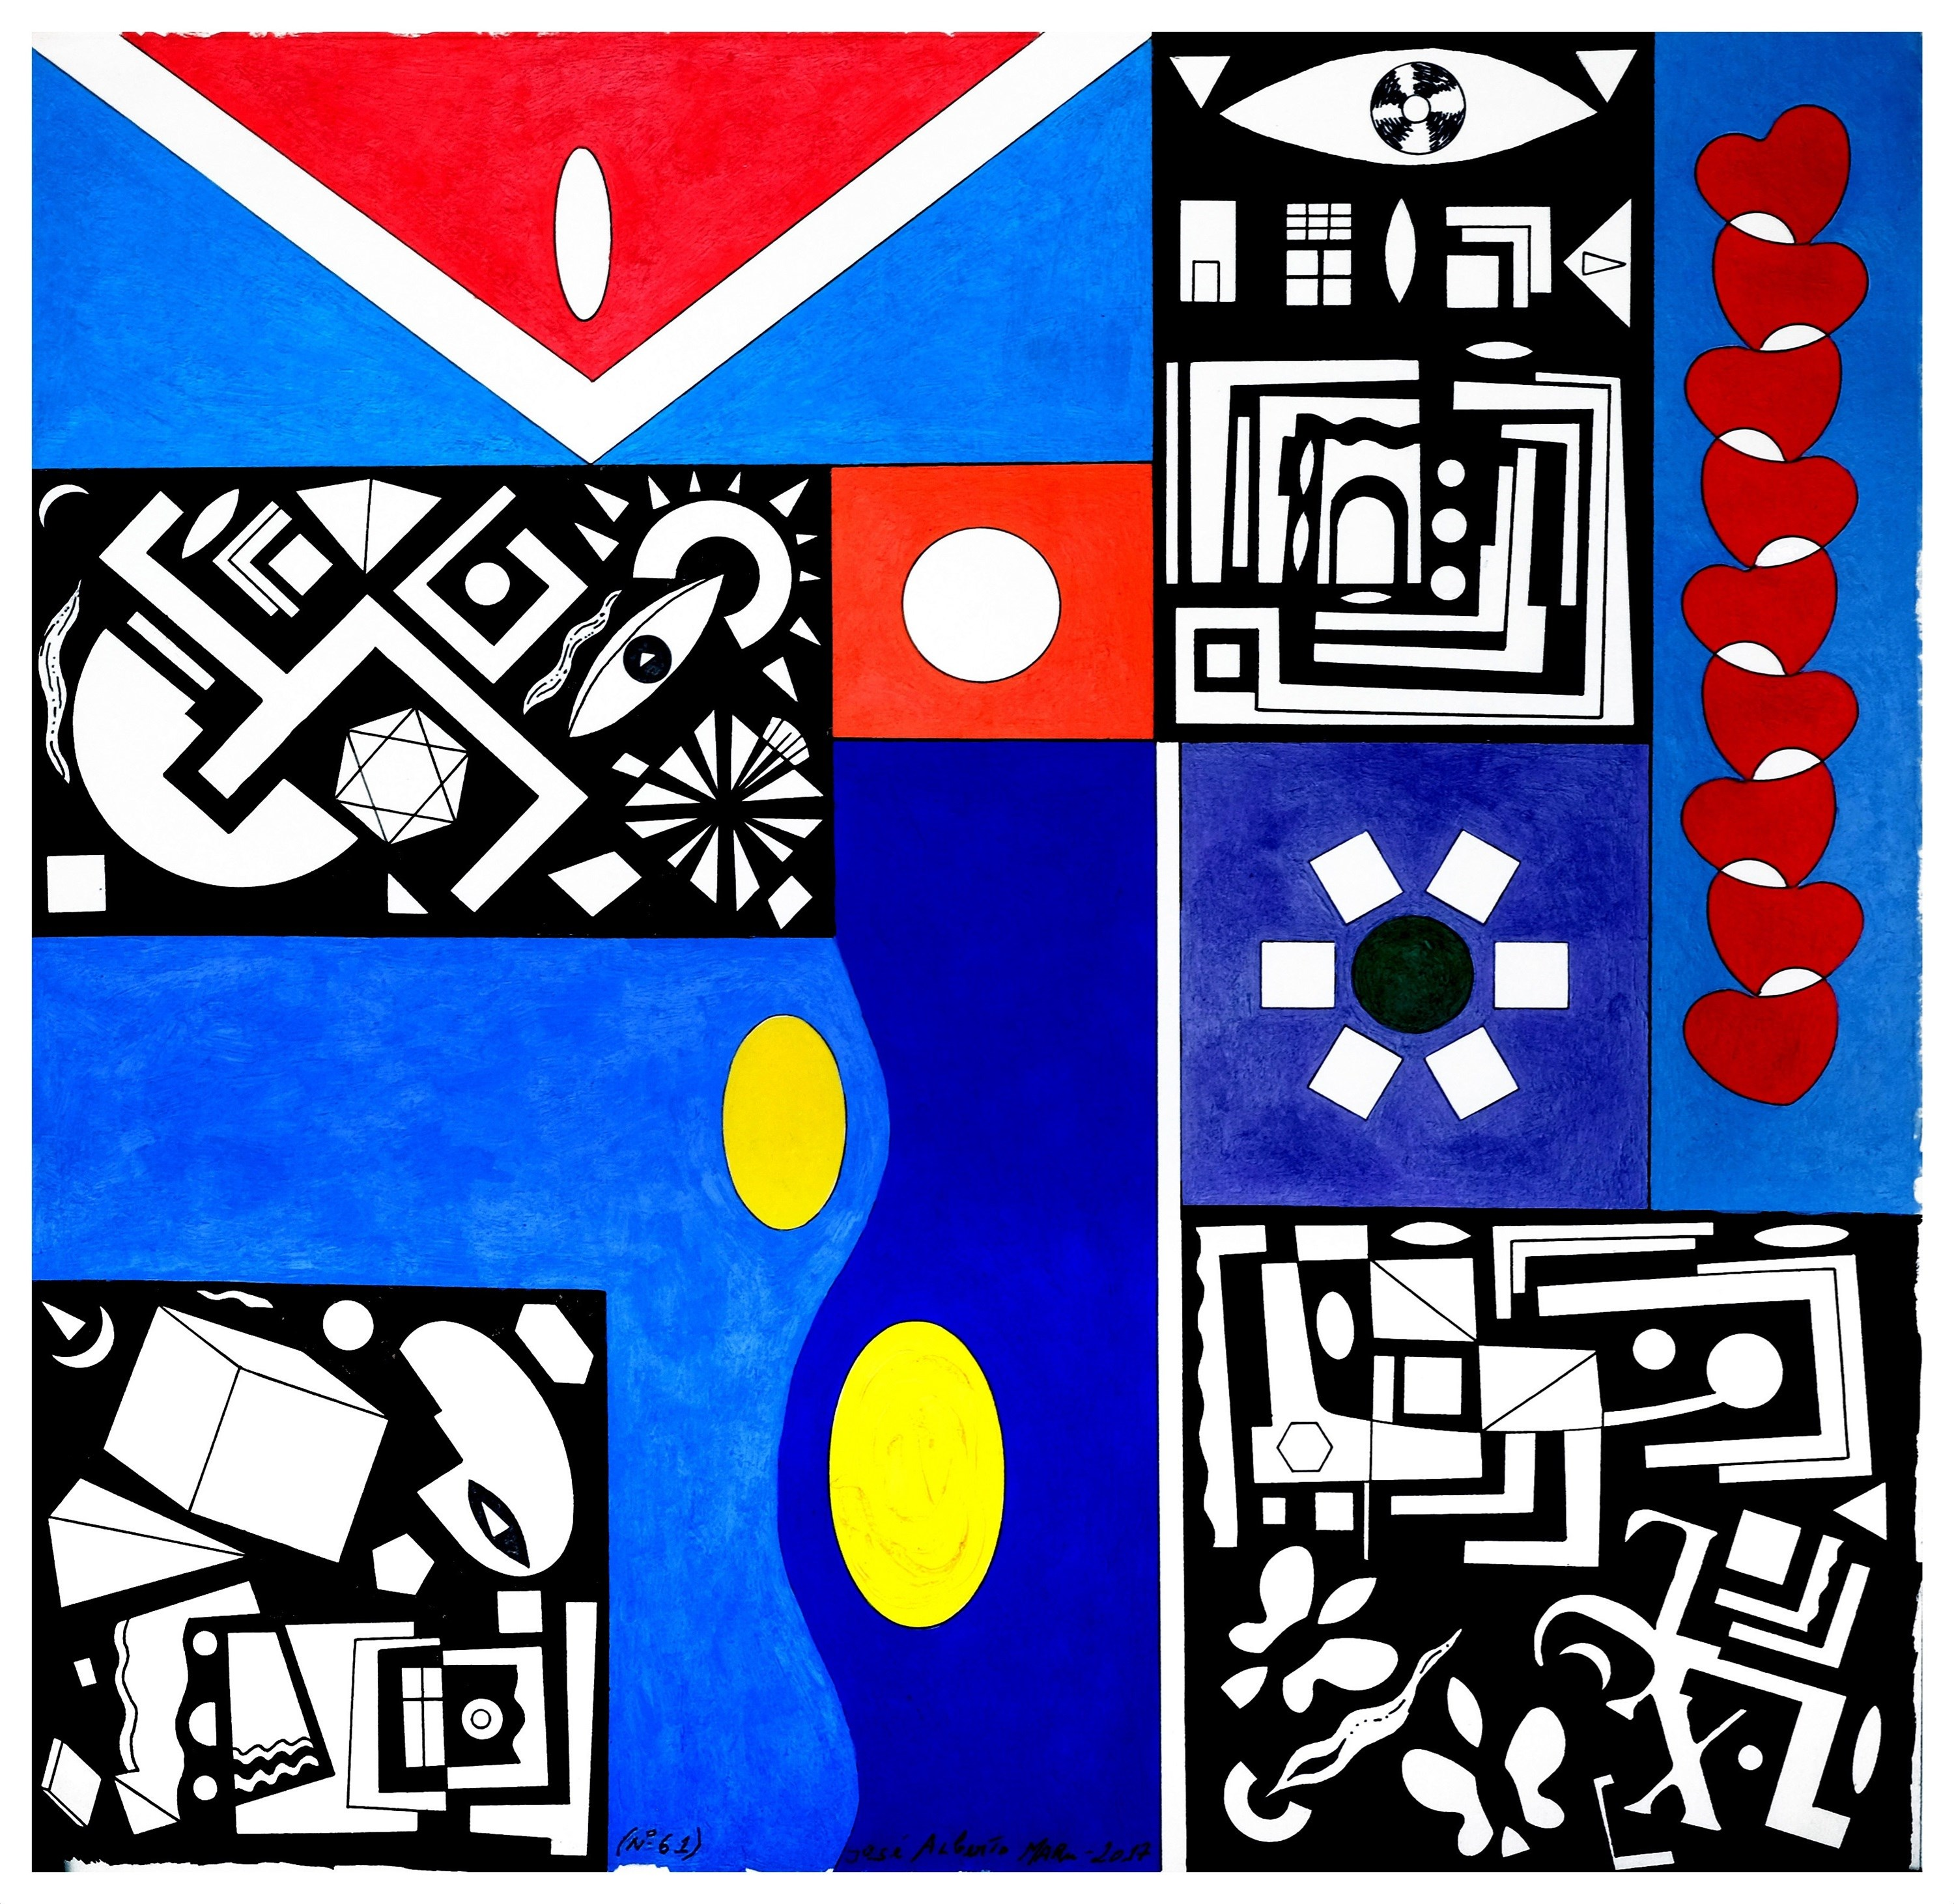 Série: pequenas sabedorias. Series: small wisdoms (Nº61), original Geometric Acrylic Painting by José Alberto Mar